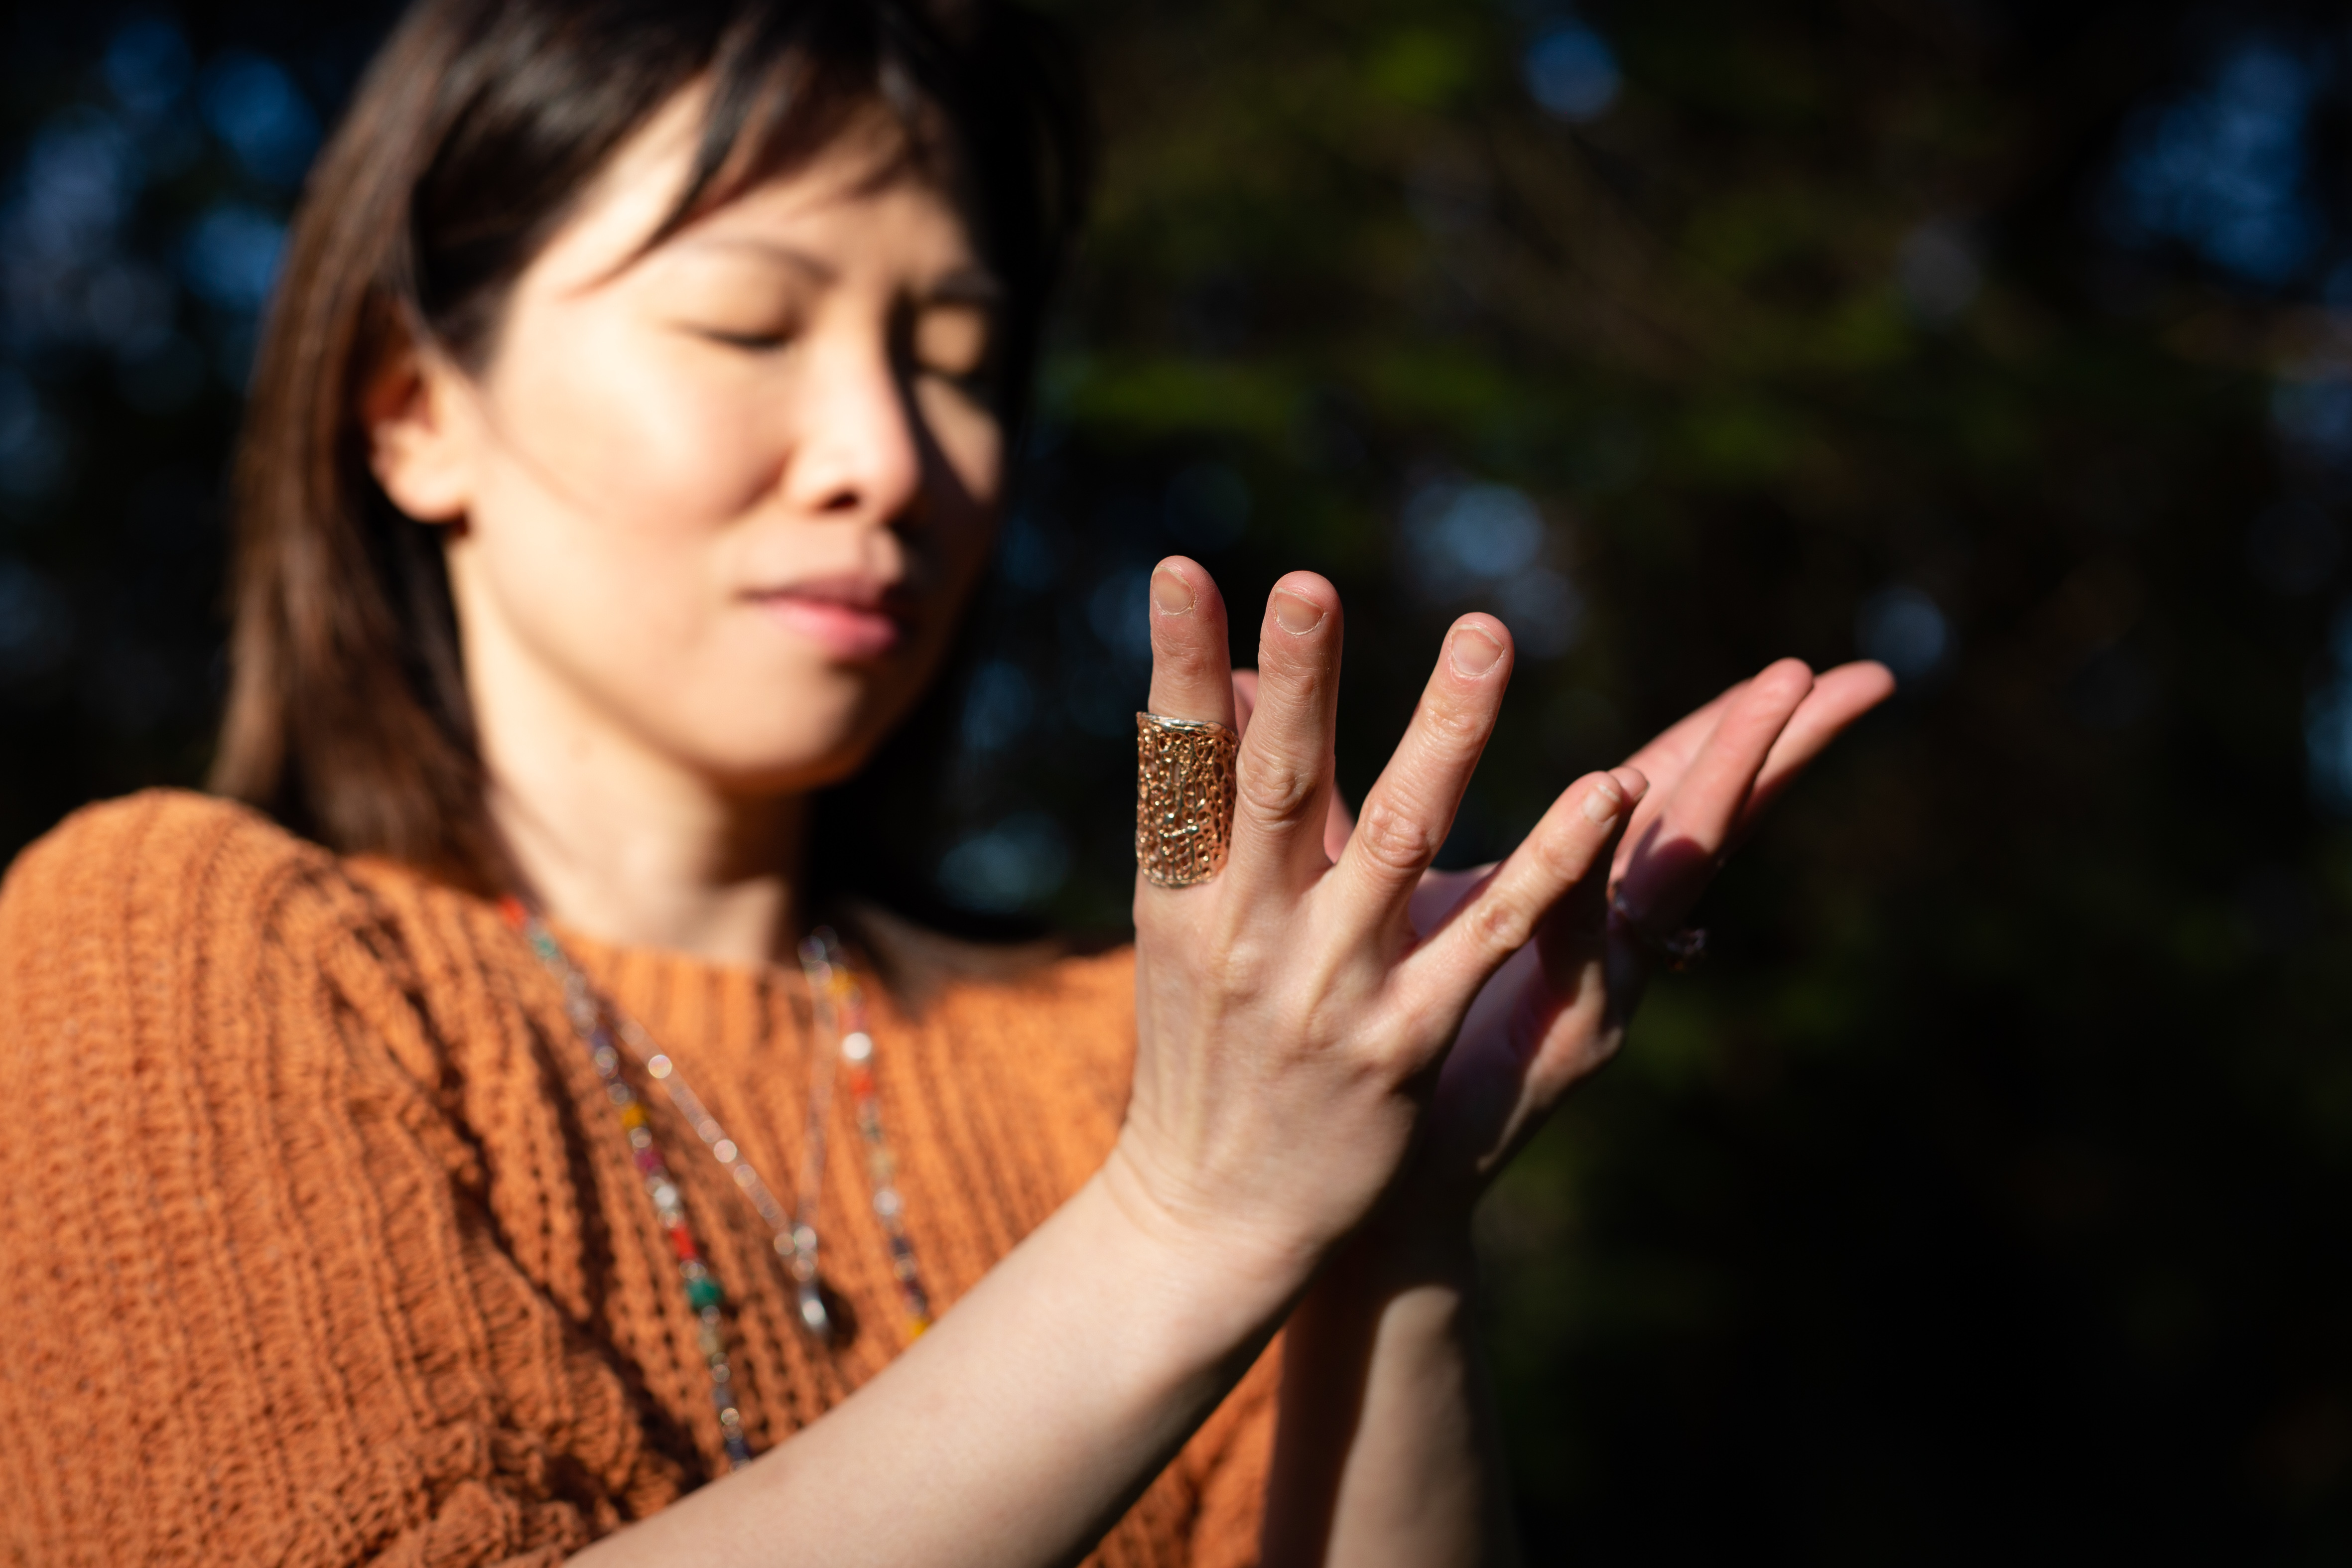 Yoga therapist Zoe Ho puts her hands in lotus mudra, a hand gesture symbolizing light and beauty emerging from the darkness.